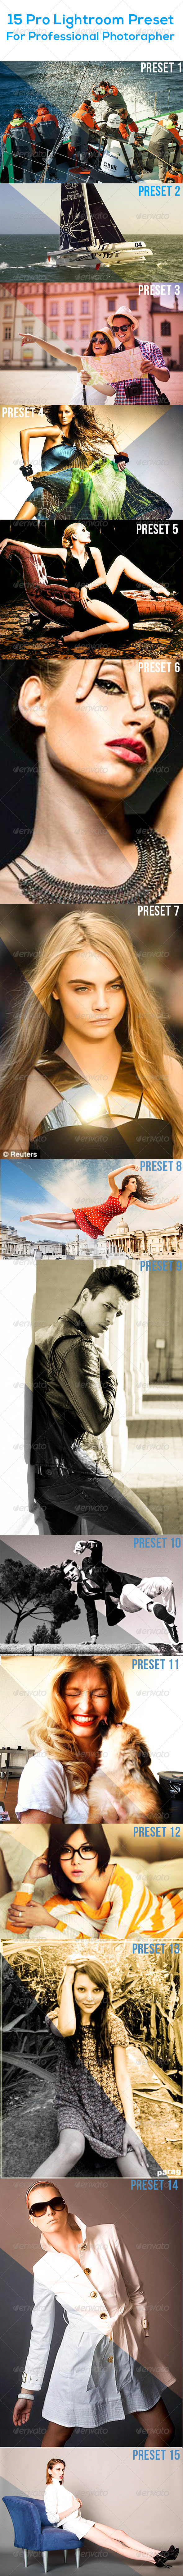 GraphicRiver 15 Pro Lightroom Preset 8132533